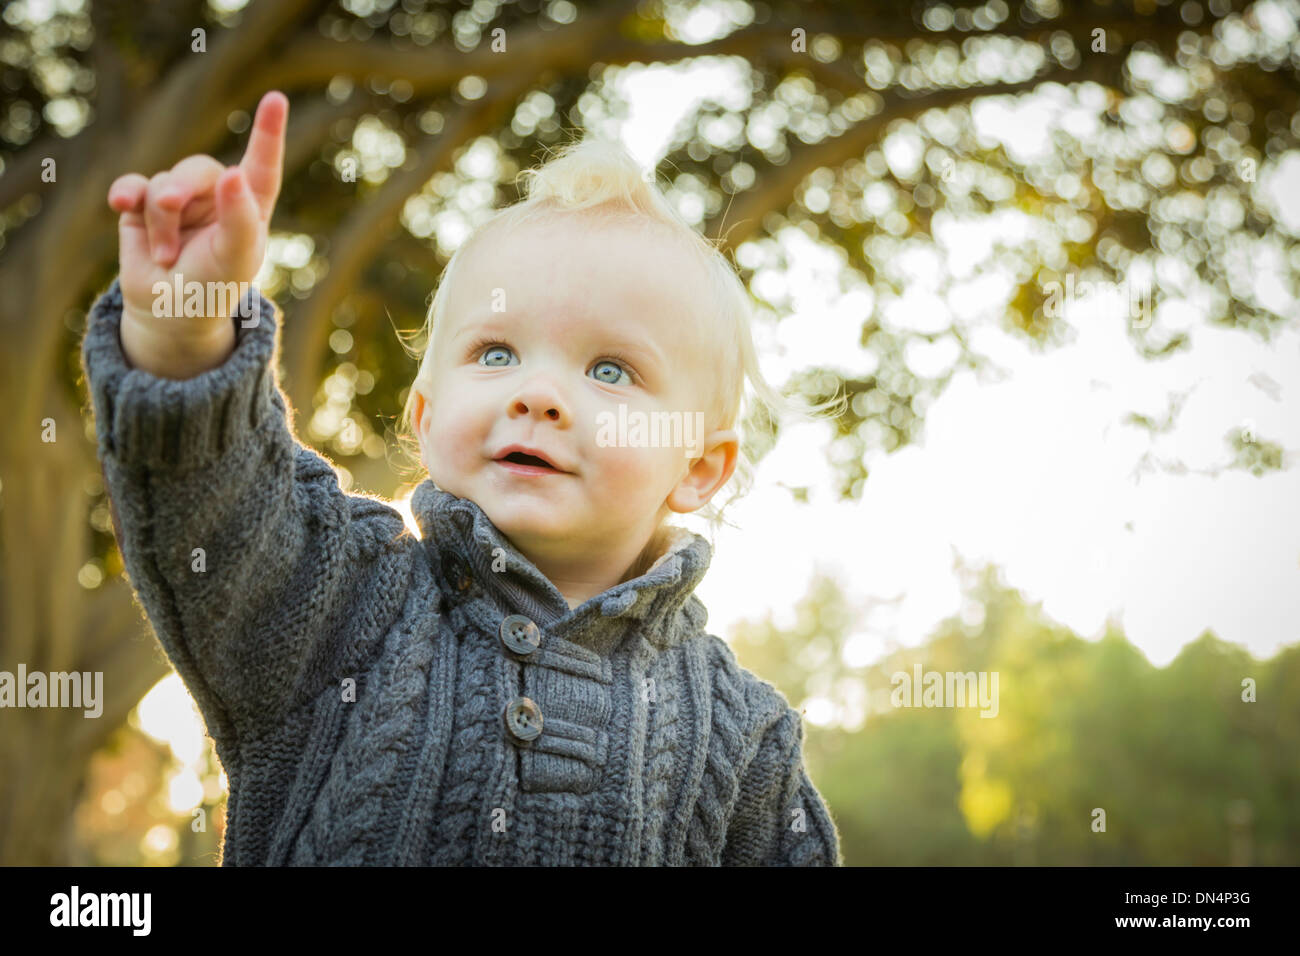 Adorable Little Blonde Baby Boy Outdoors at the Park. - Stock Image